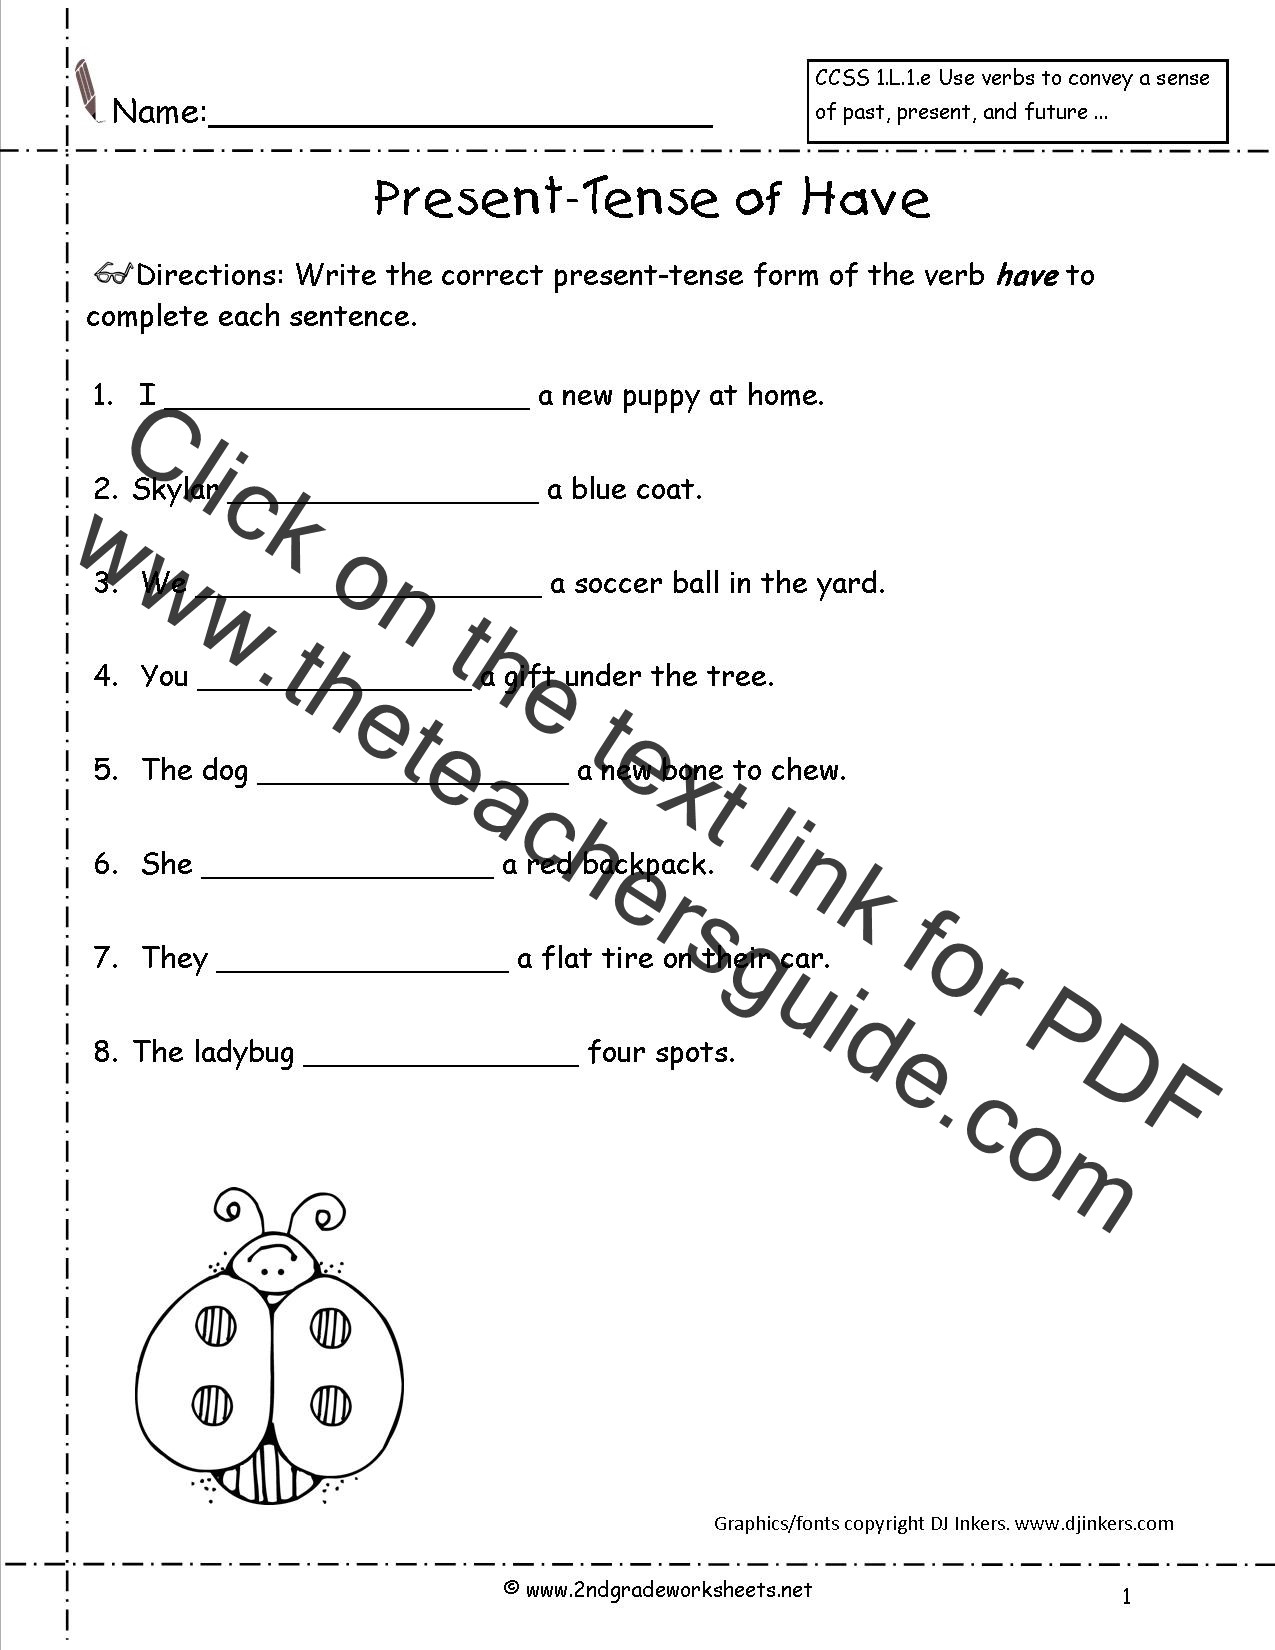 Verb Tense Worksheets 1st Grade 4th Grade Verbs Worksheet